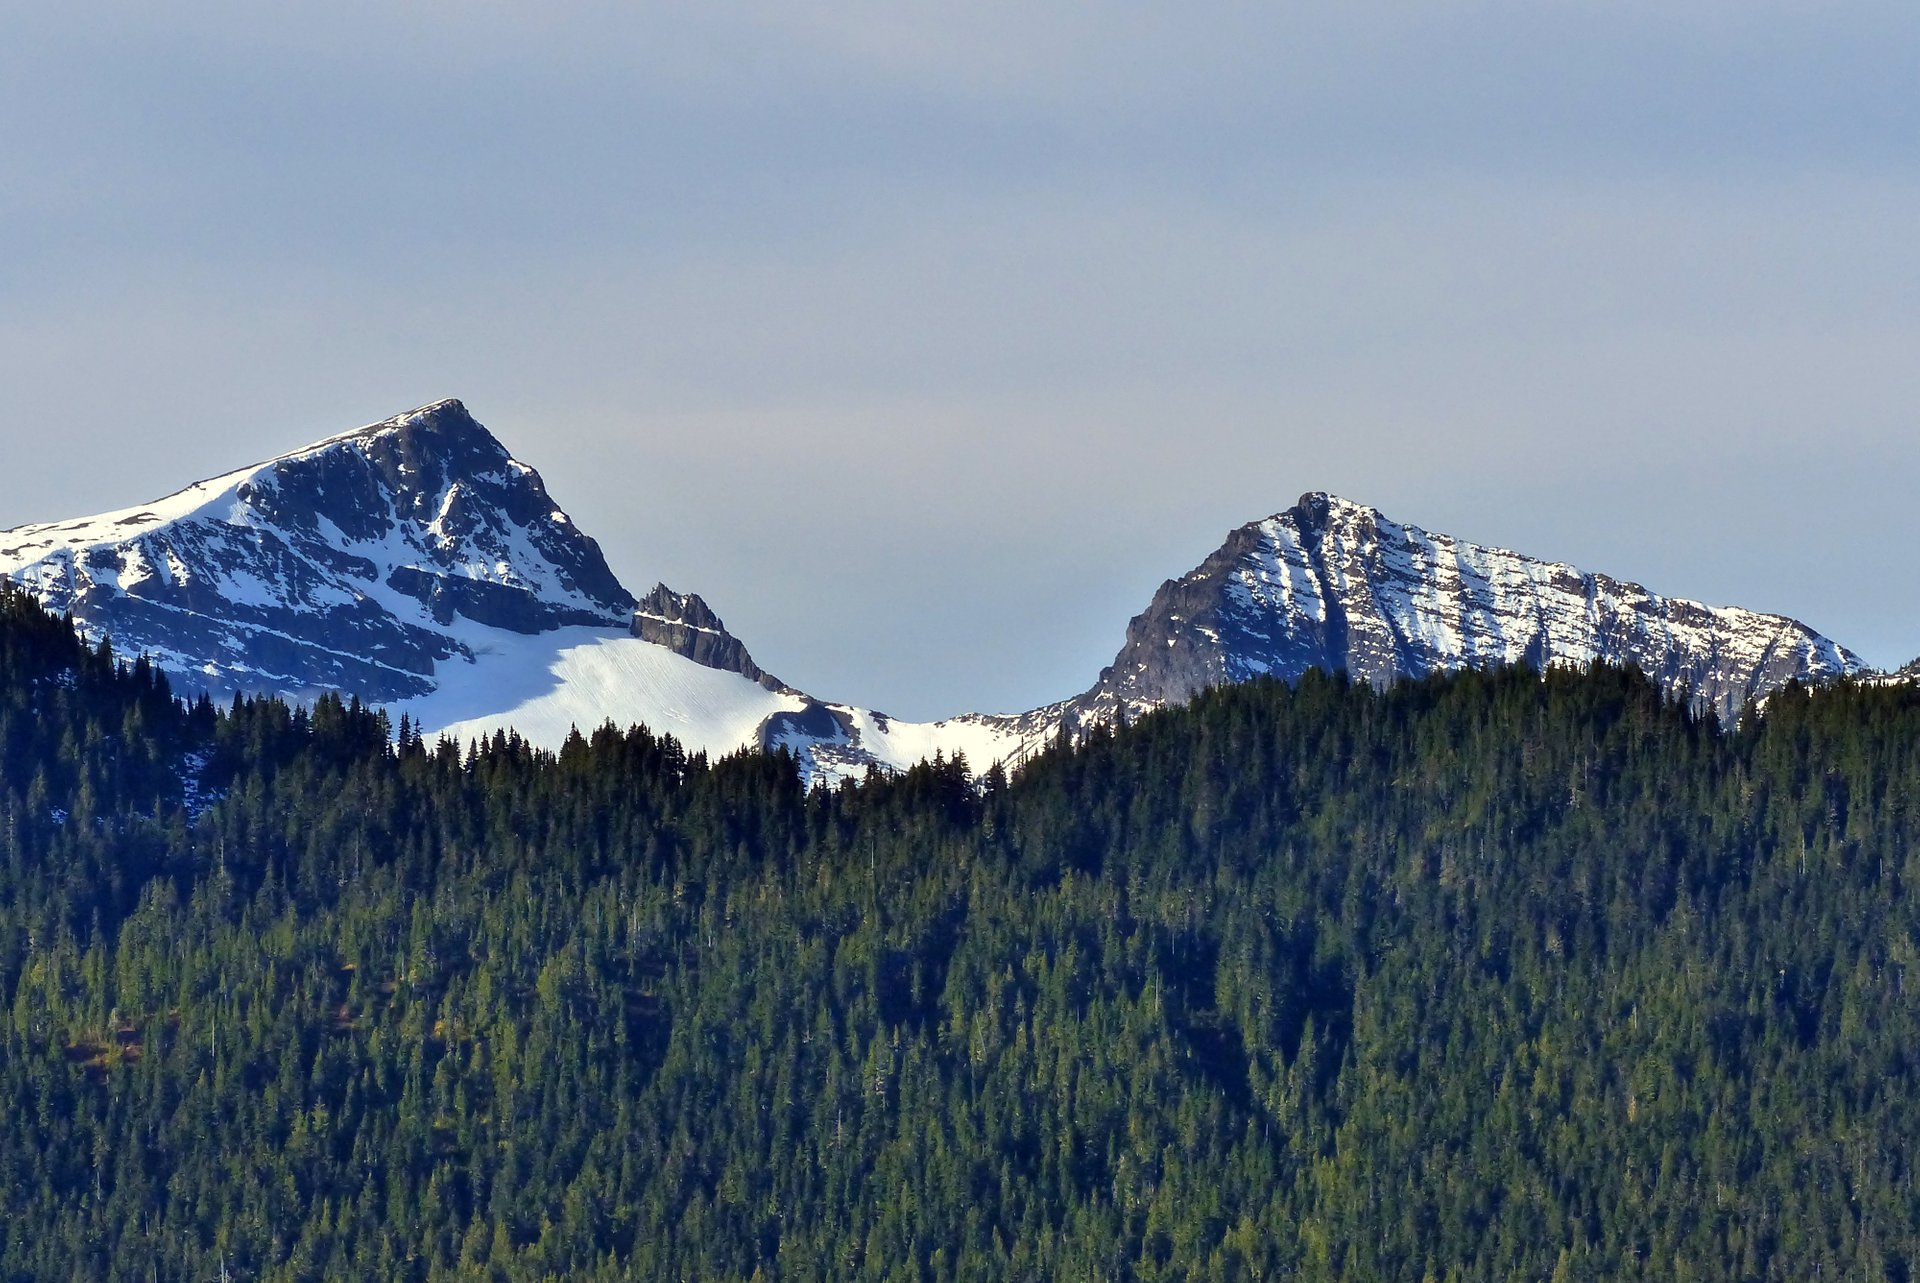 Mt Albert Edward in British Columbia 2020 - Best Time